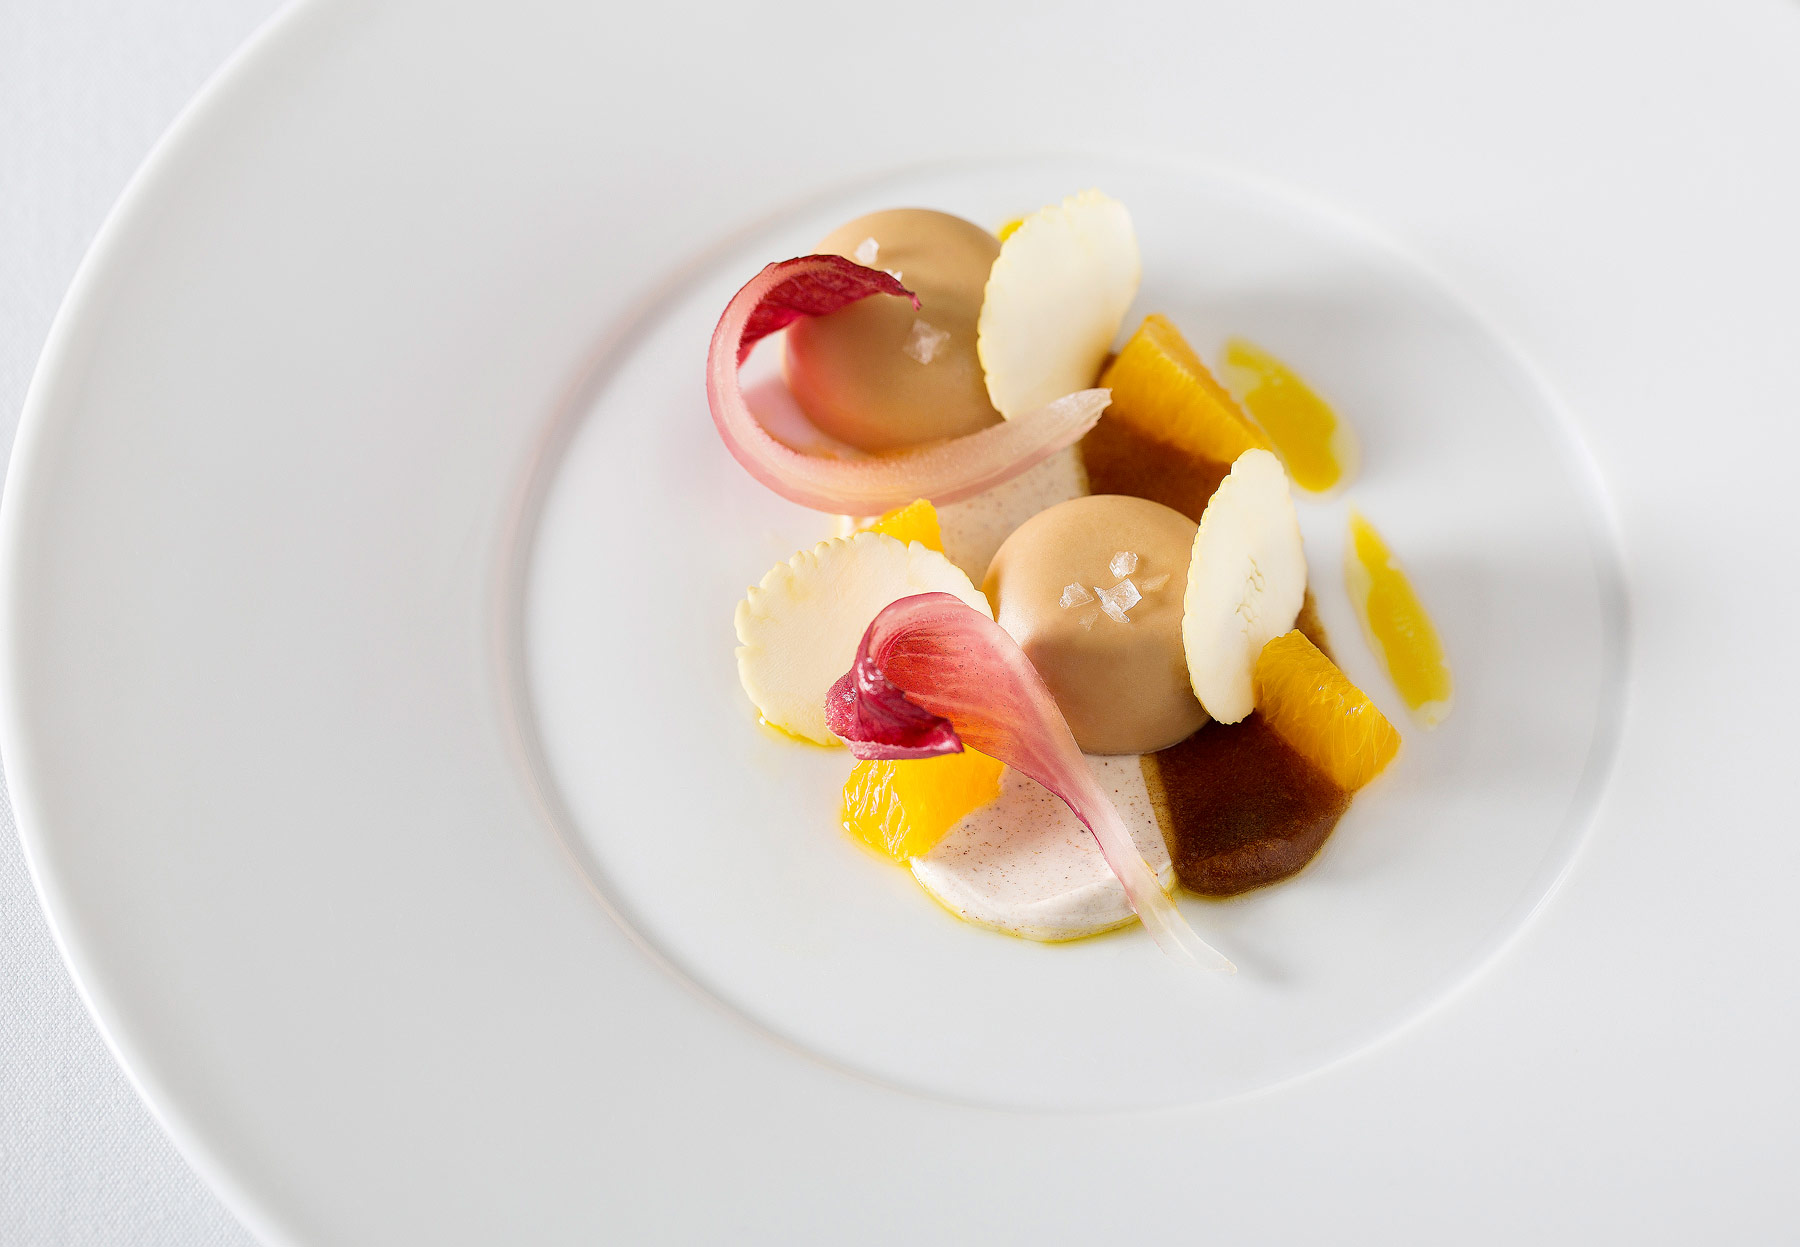 Michelin Star Dining At Alyn Williams at The Westbury 5